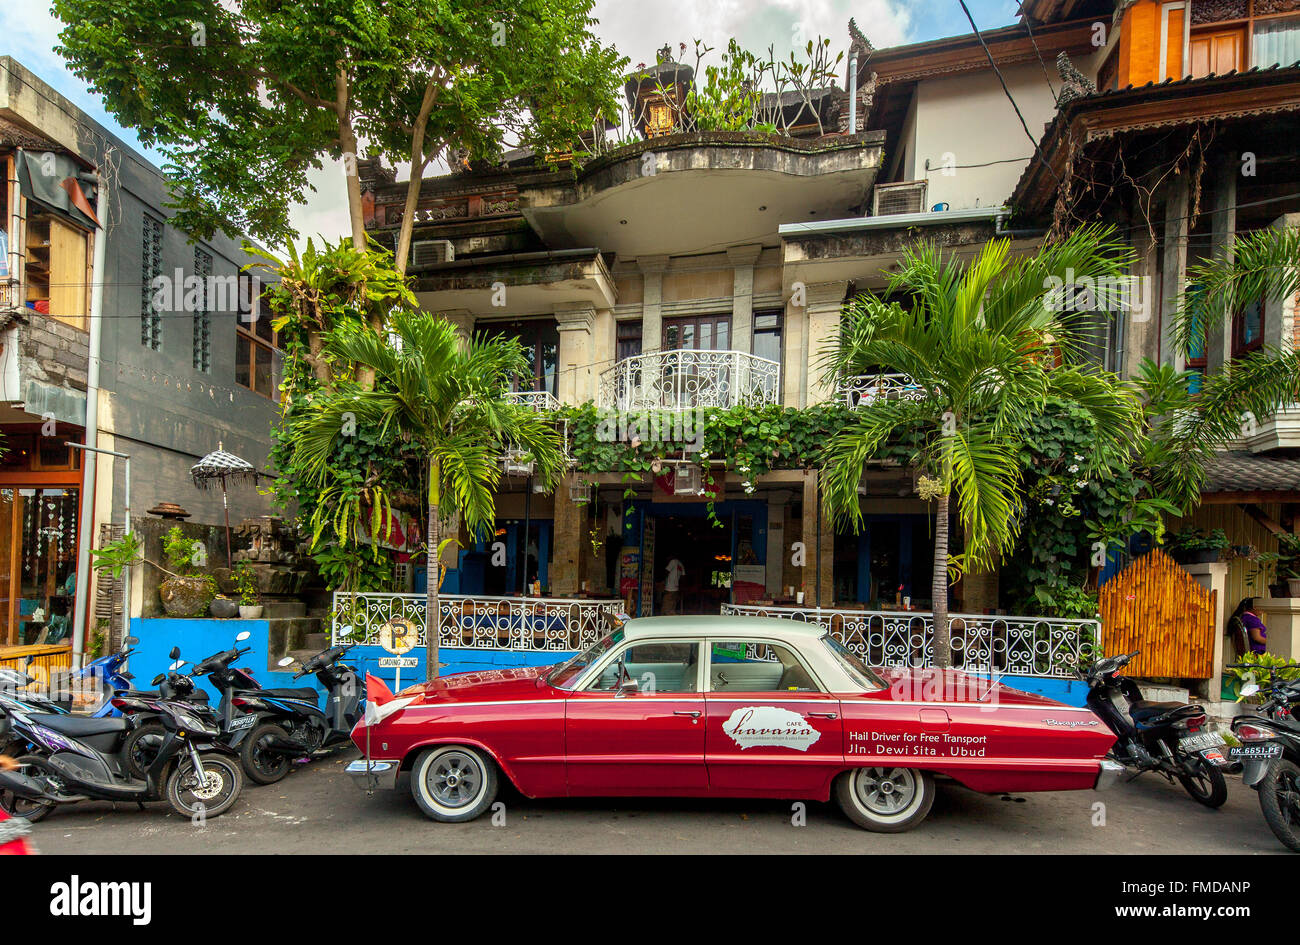 Red Chevrolet Biscayne in front of a cafe, street setting, Ubud, Bali, Indonesia - Stock Image